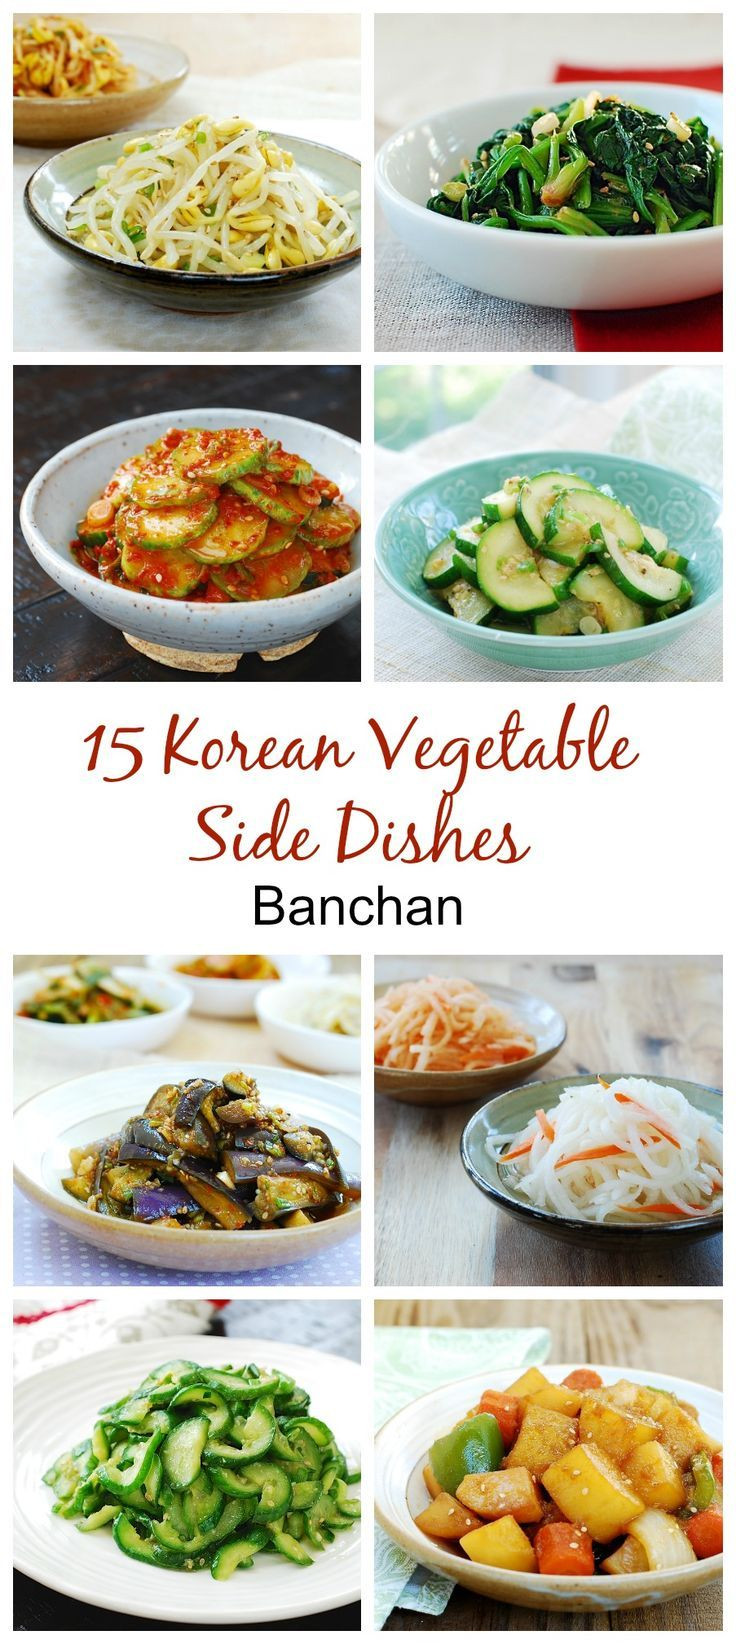 Healthy Asian Side Dishes  Here's a collection of easy and healthy Korean ve able